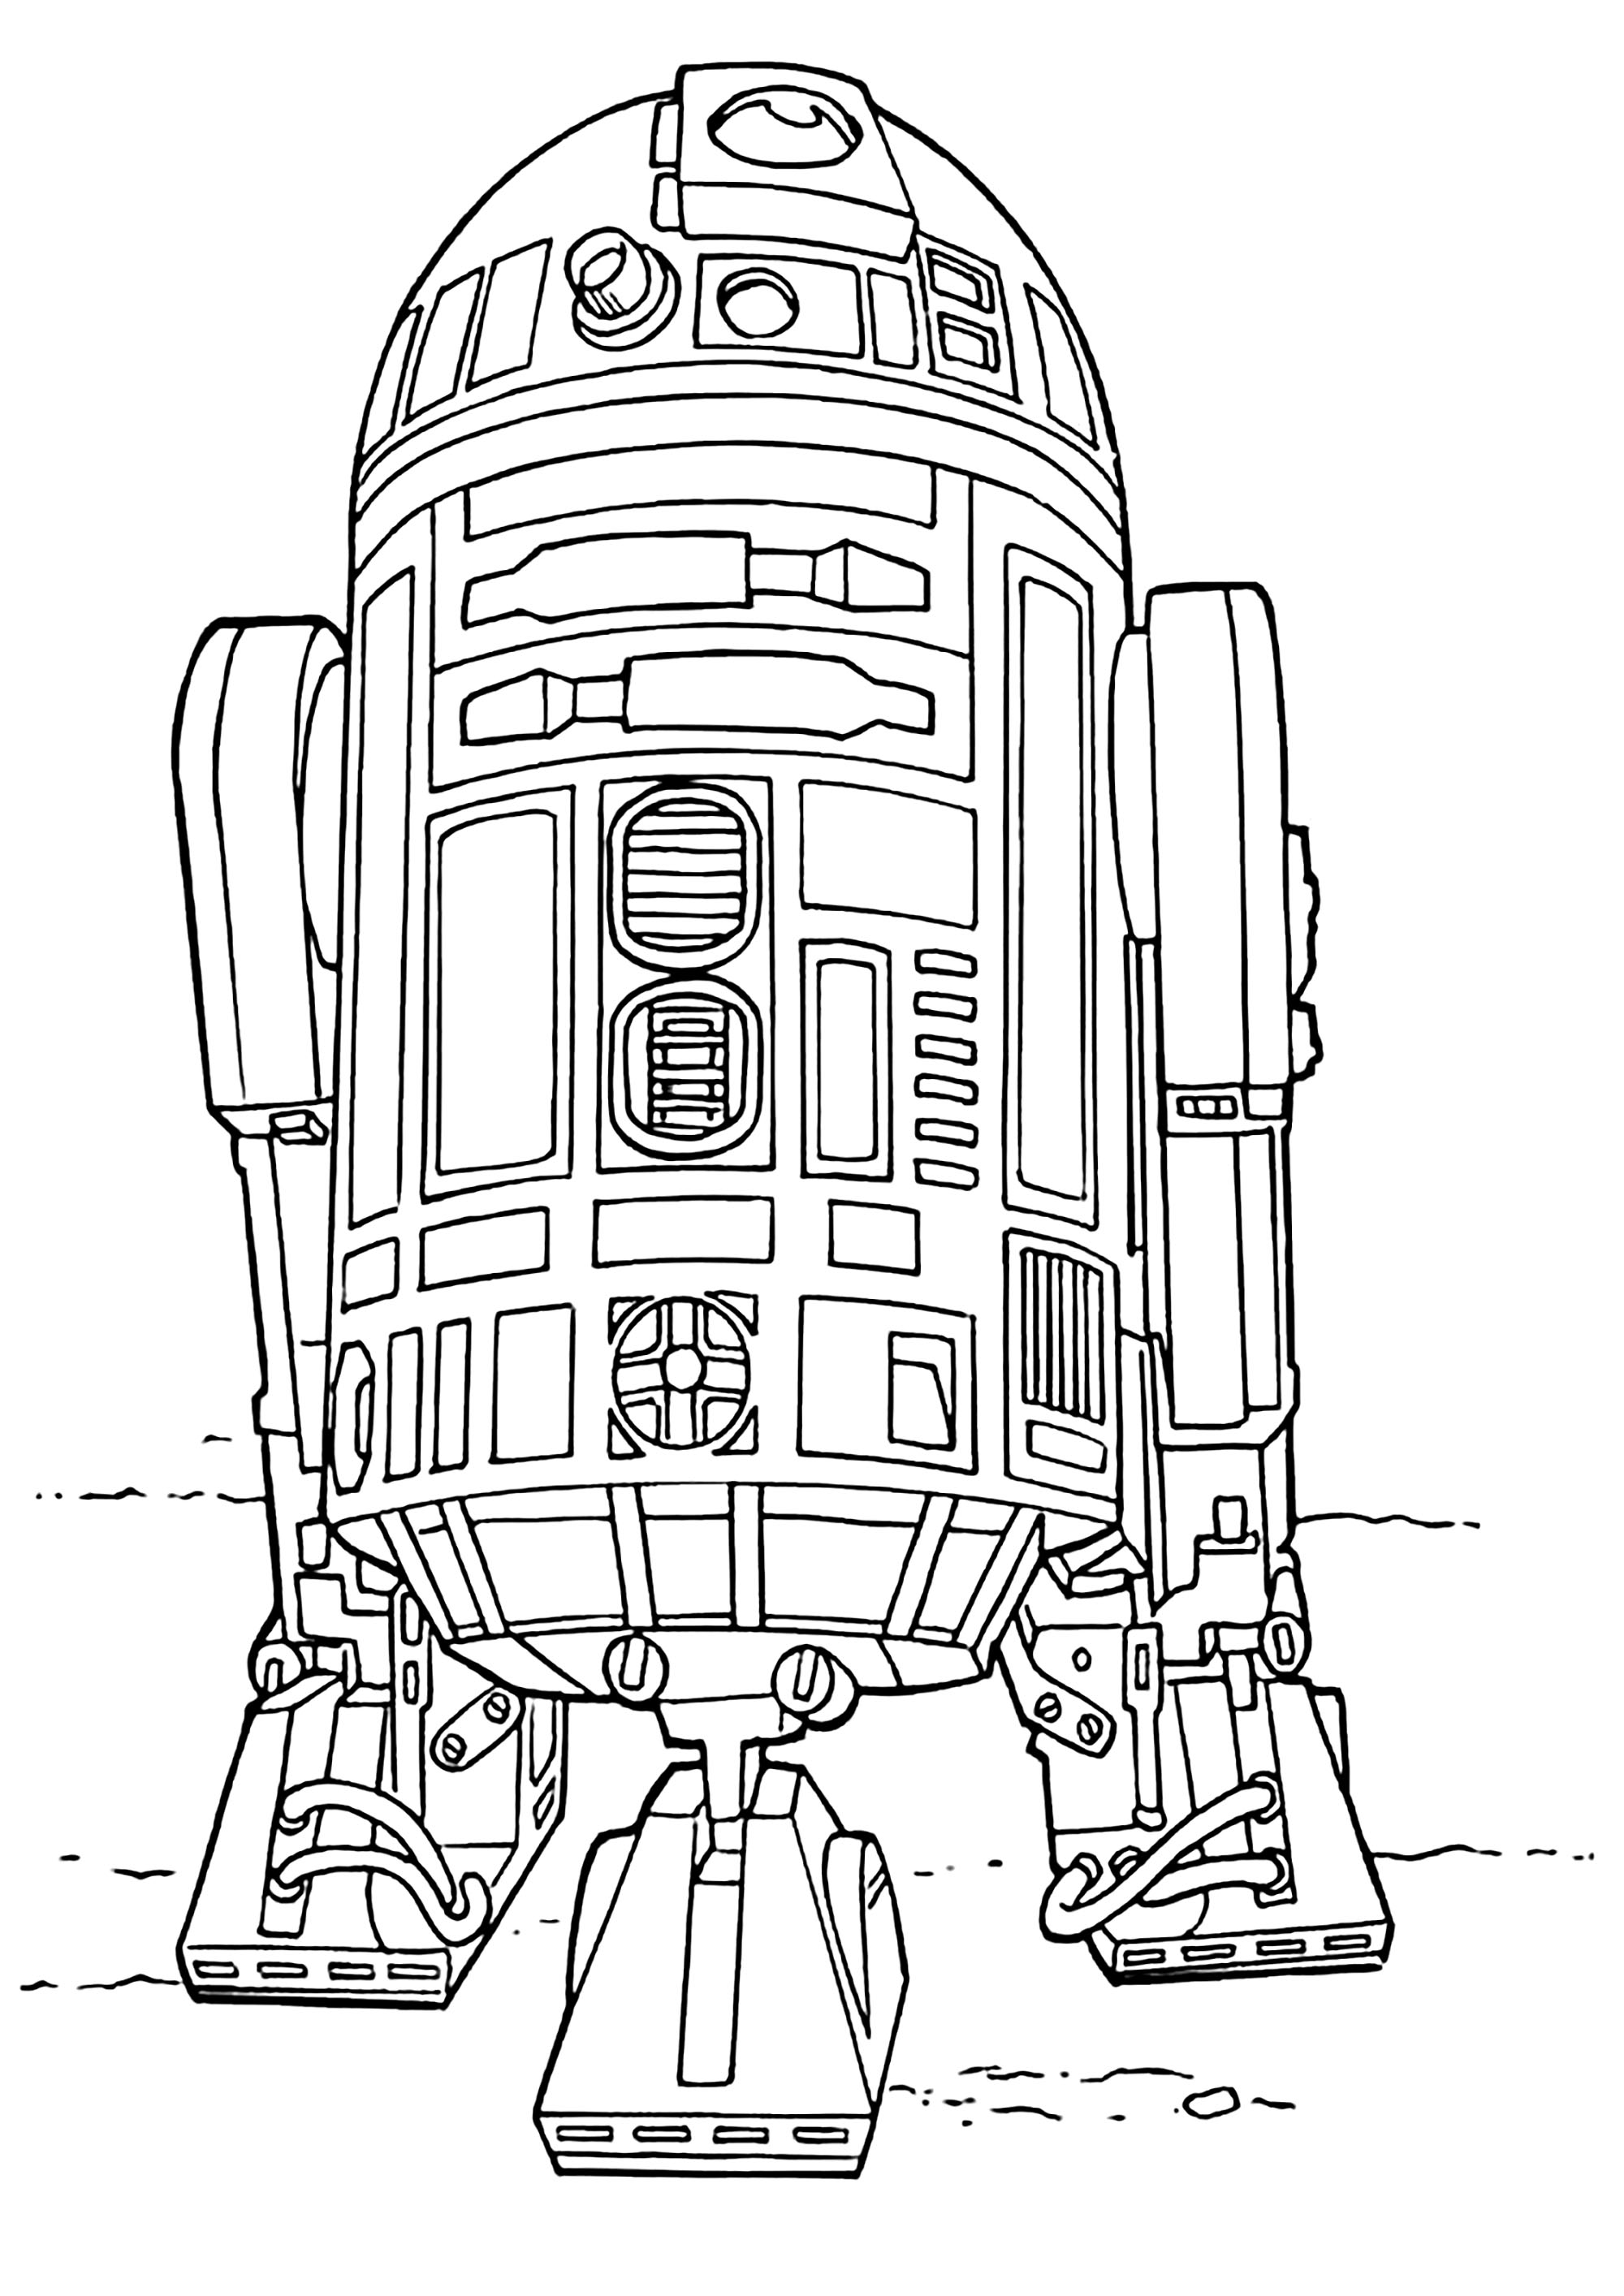 star wars pictures to color free printable star wars coloring pages free printable pictures star to color wars